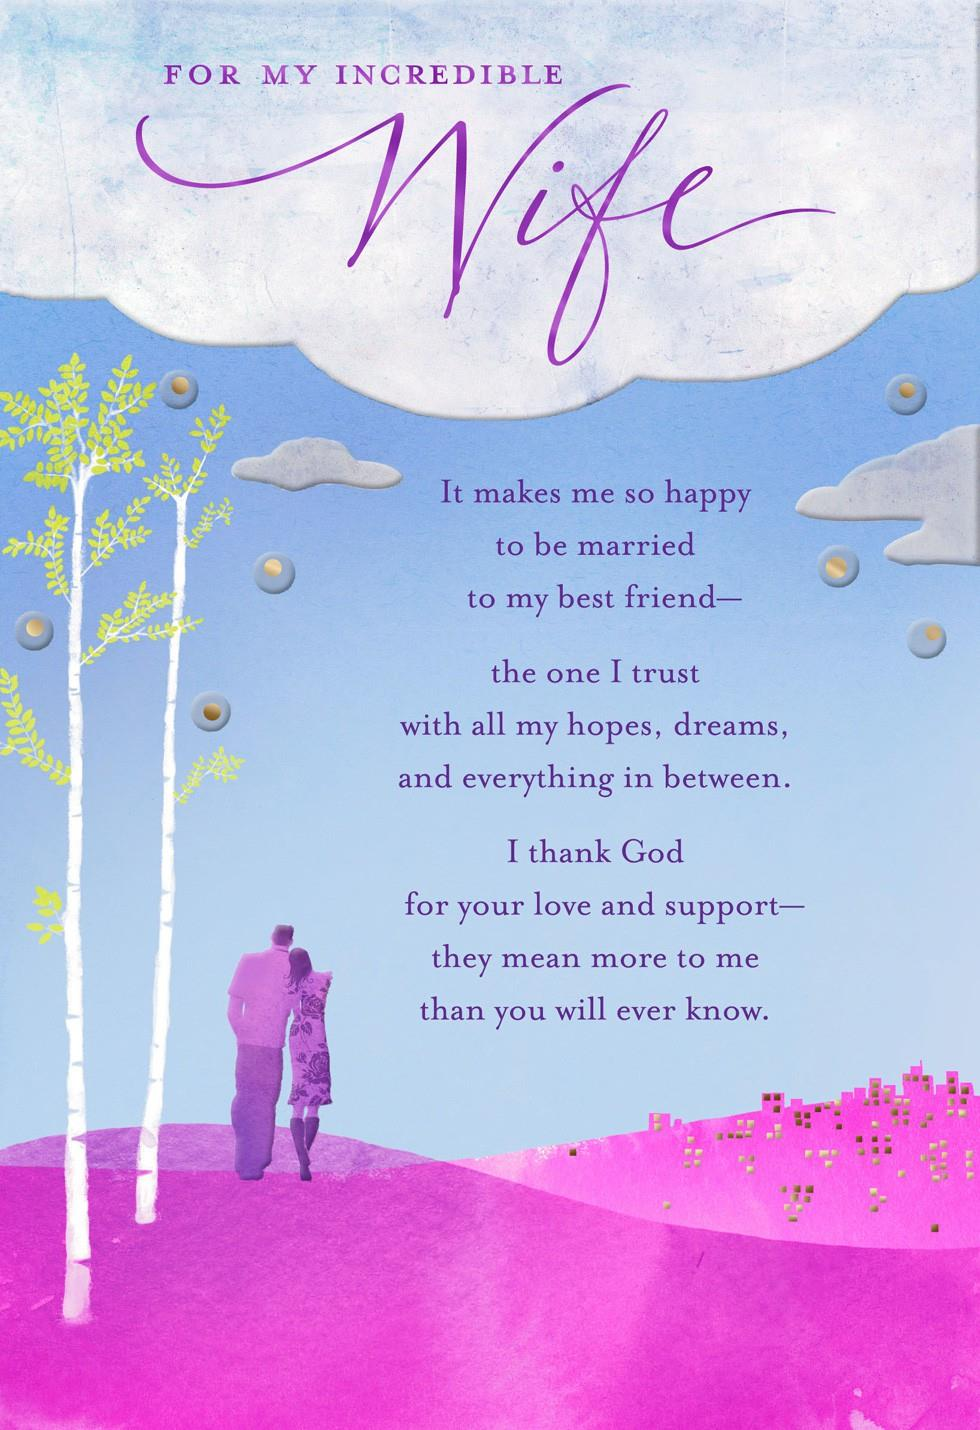 biblical thank you message for birthday greetings ; wife-i-love-you-root-399cey1245_1470_1